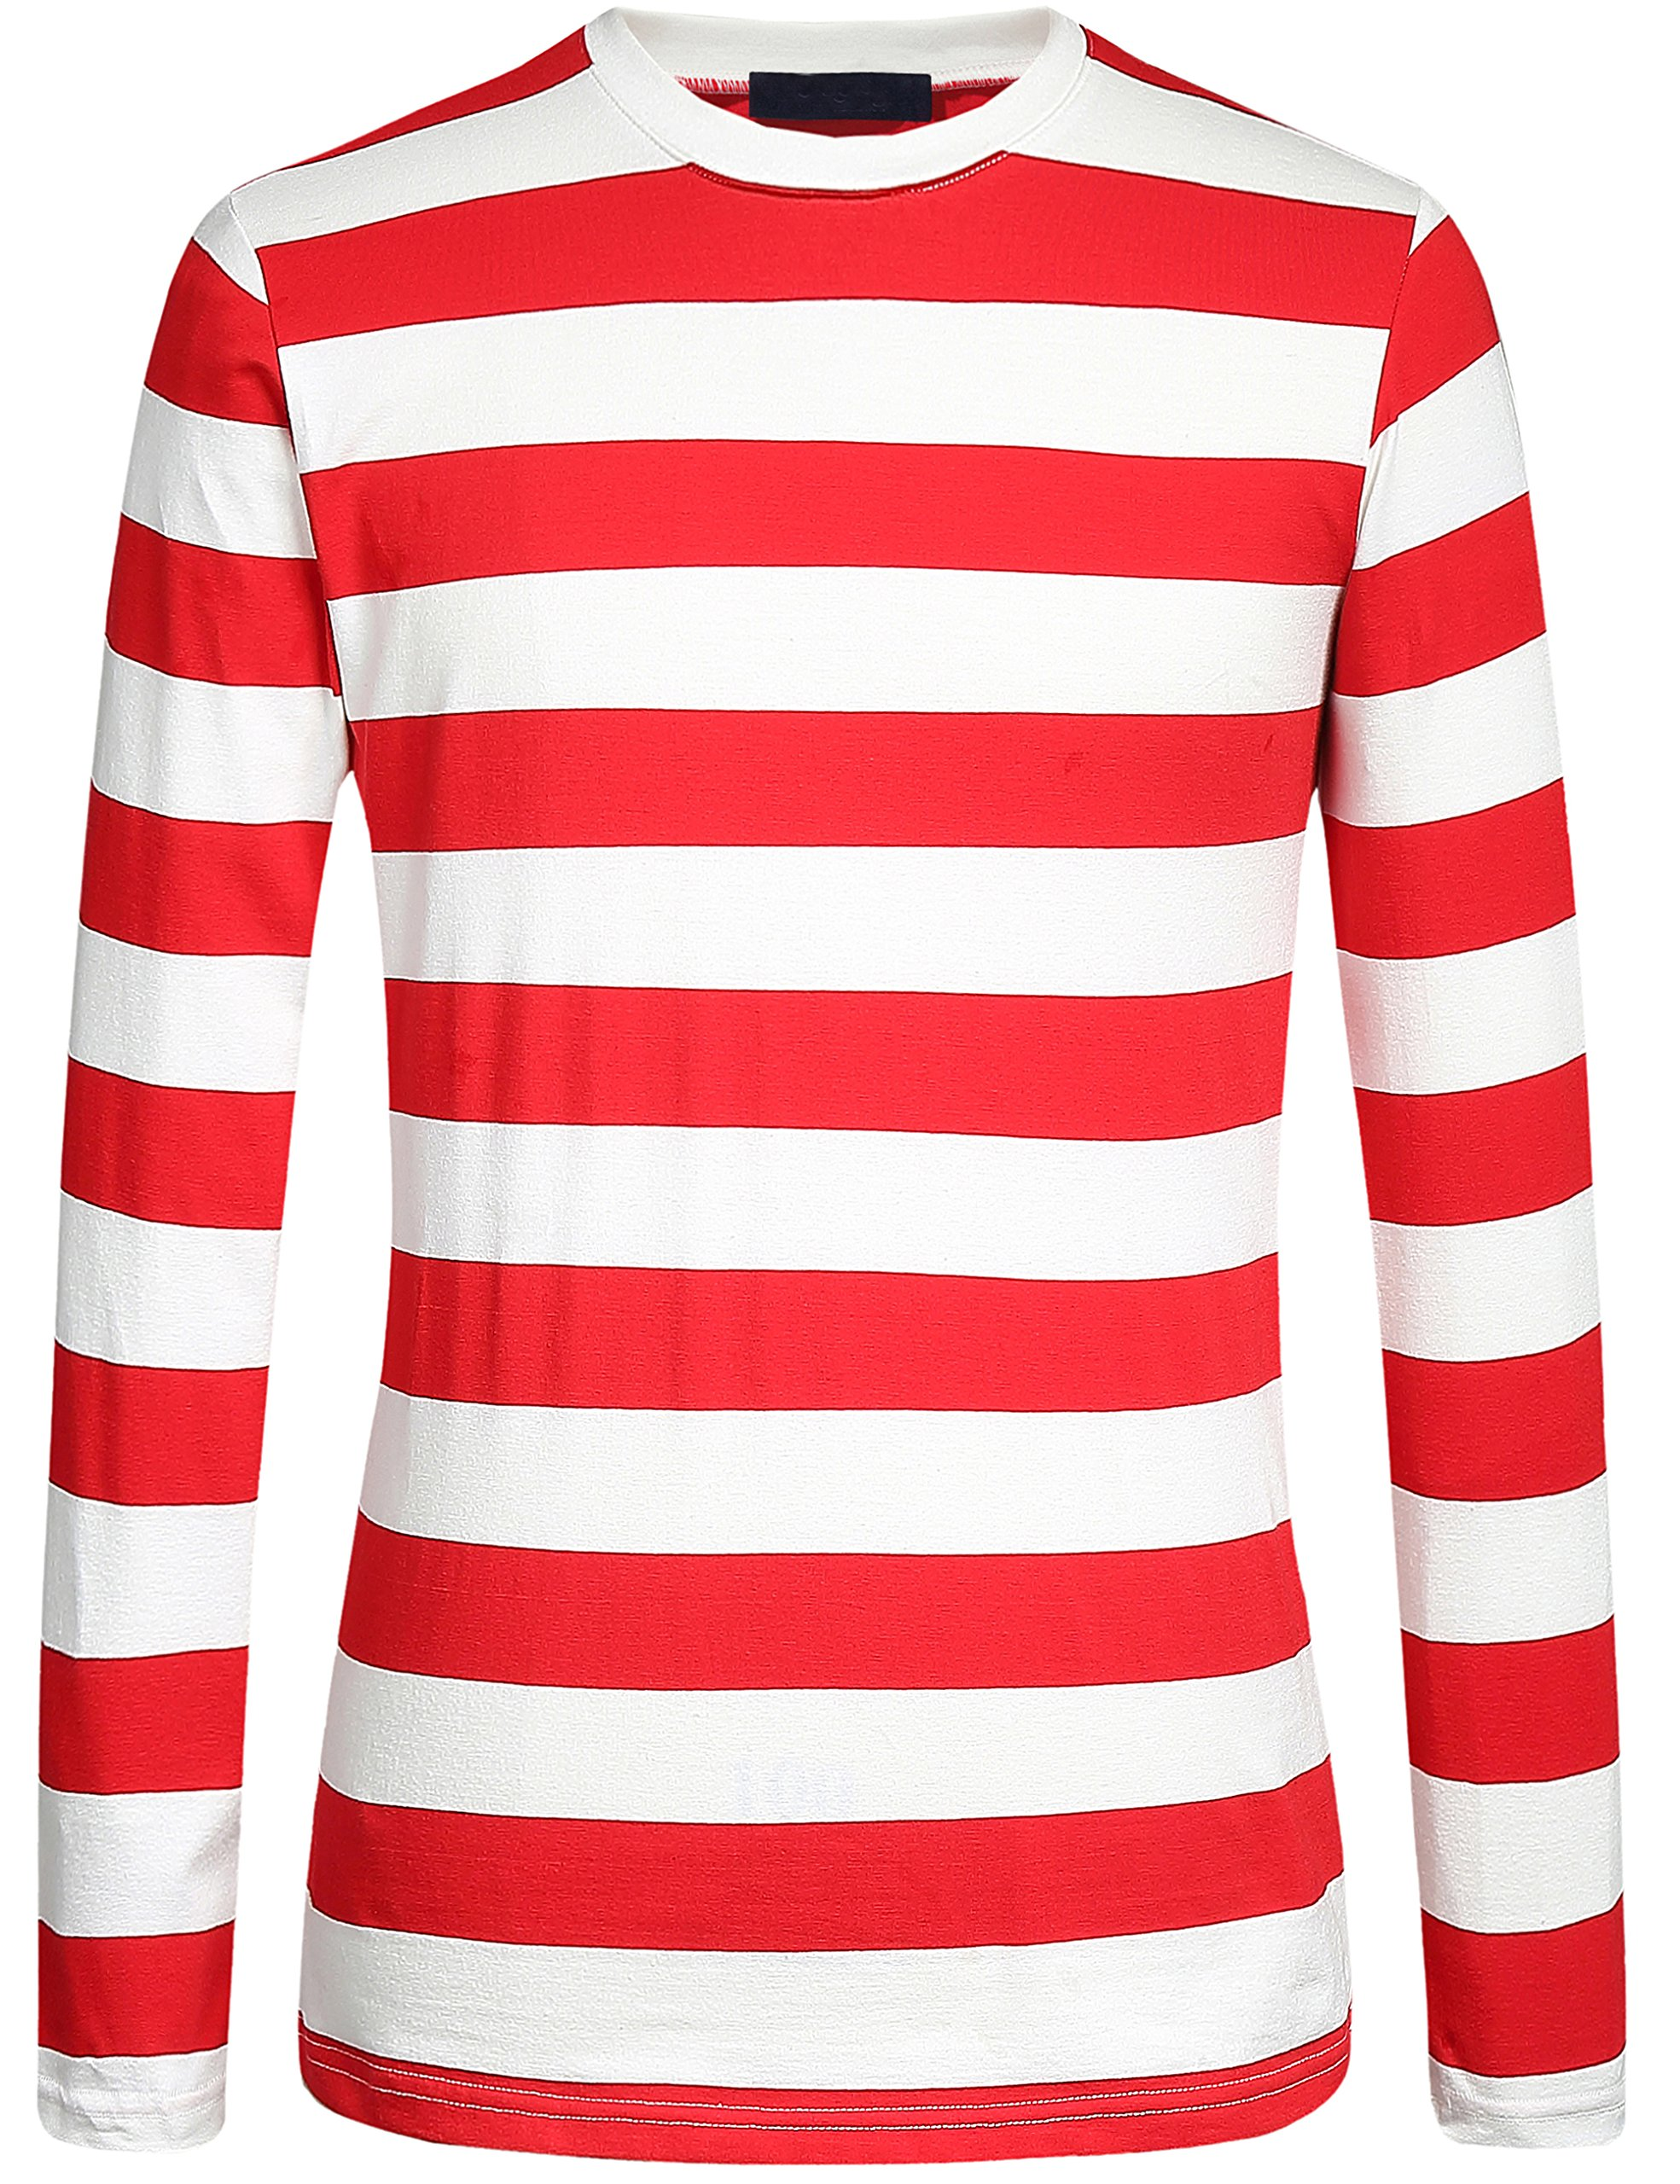 SSLR Men's Cotton Crew Neck Casual Long Sleeves Stripe T-Shirt (Medium, Red White)